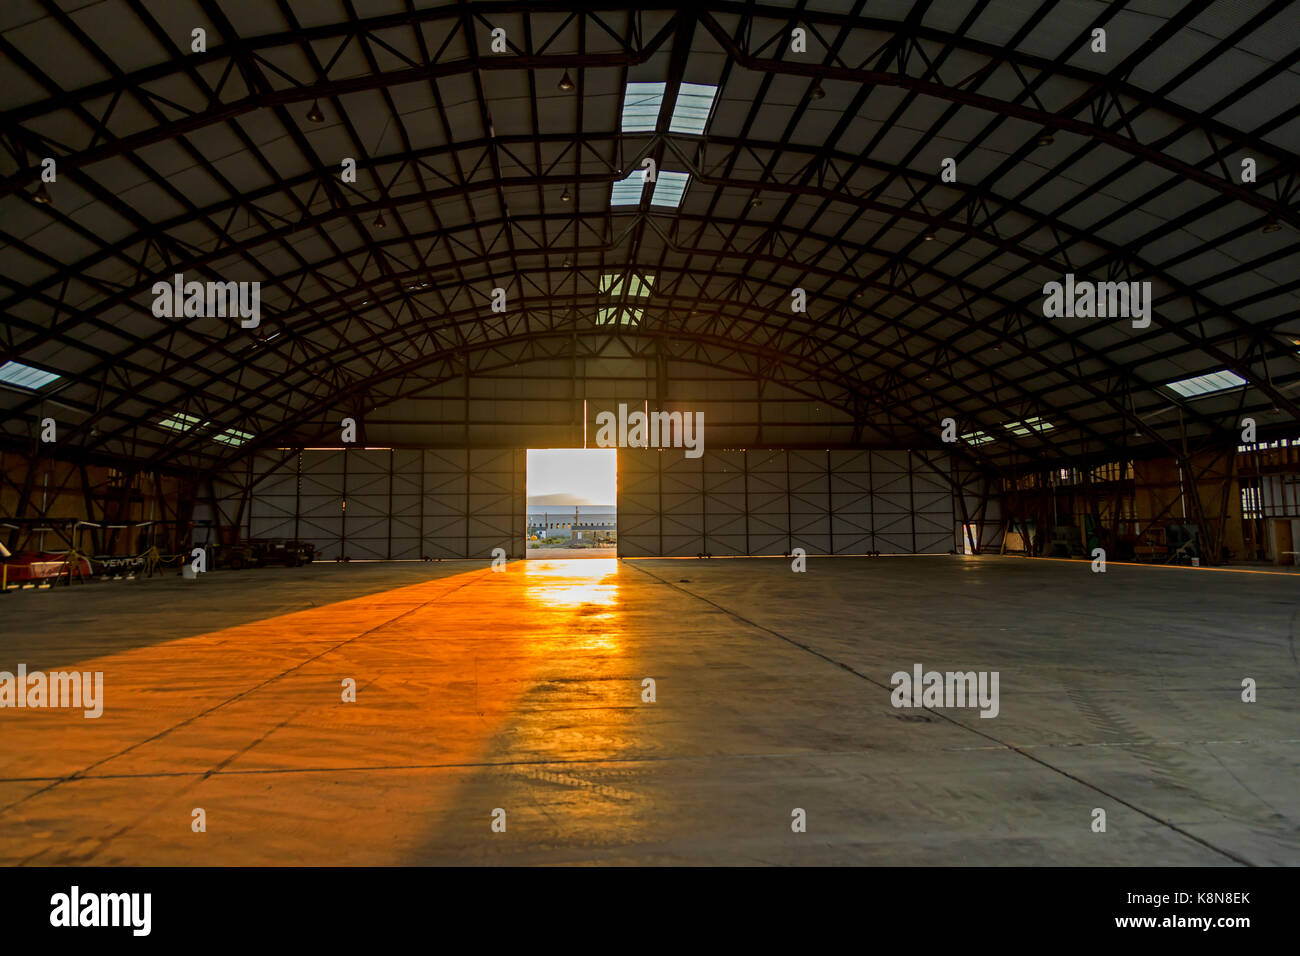 The setting sun shines through the front door into the interior of the Enola Gay Hangar at the Historic Wendover Stock Photo